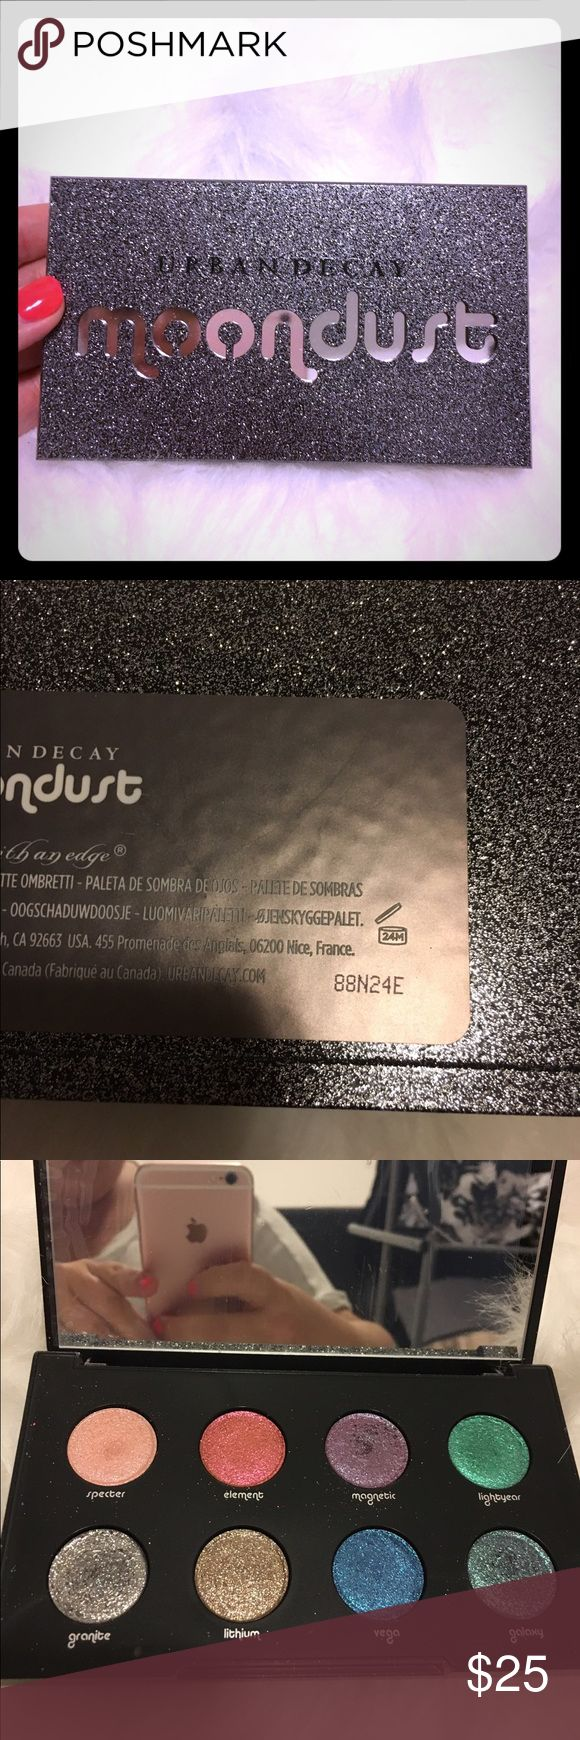 Urban Decay Moondust Palette Used once or twice, doesn't get used enough. In great condition. Urban Decay Makeup Eyeshadow